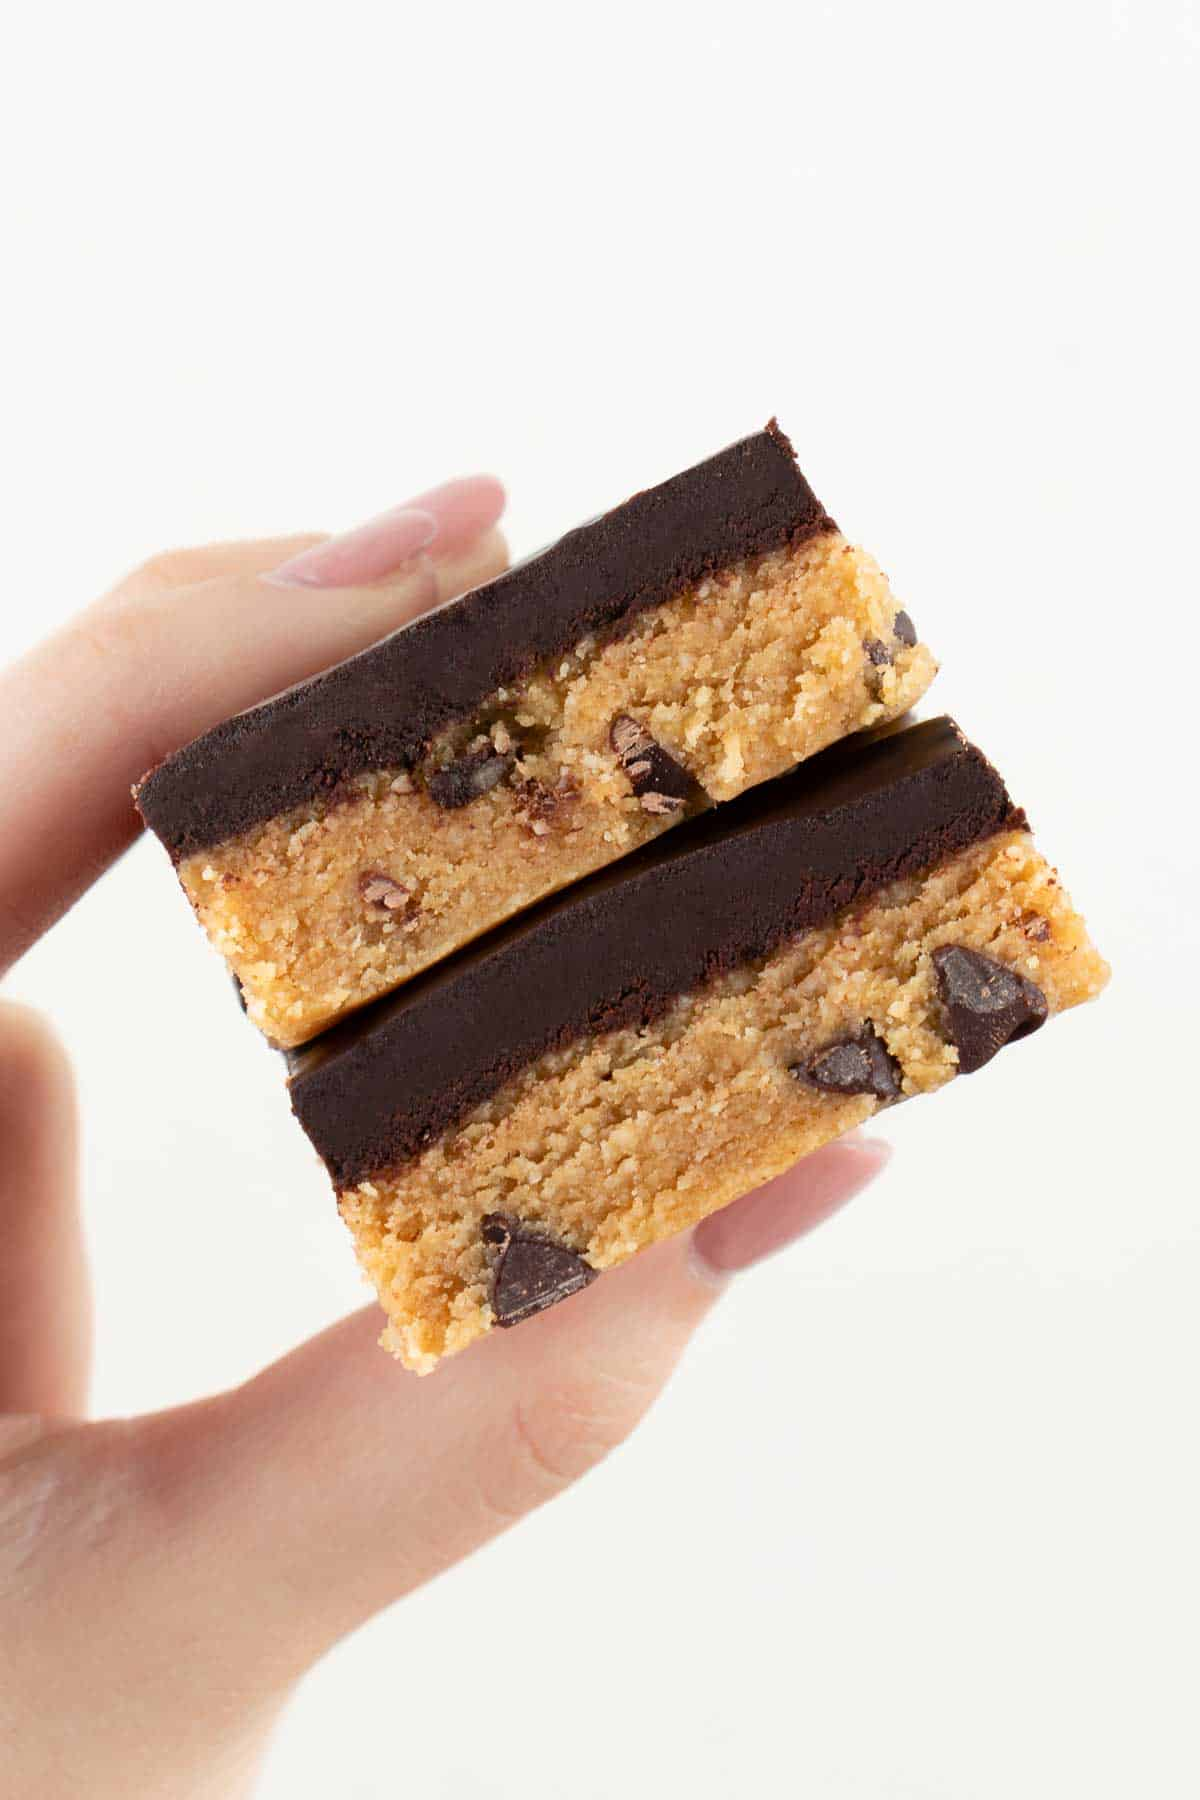 a hand holding a stack of two vegan no bake cookie dough bars